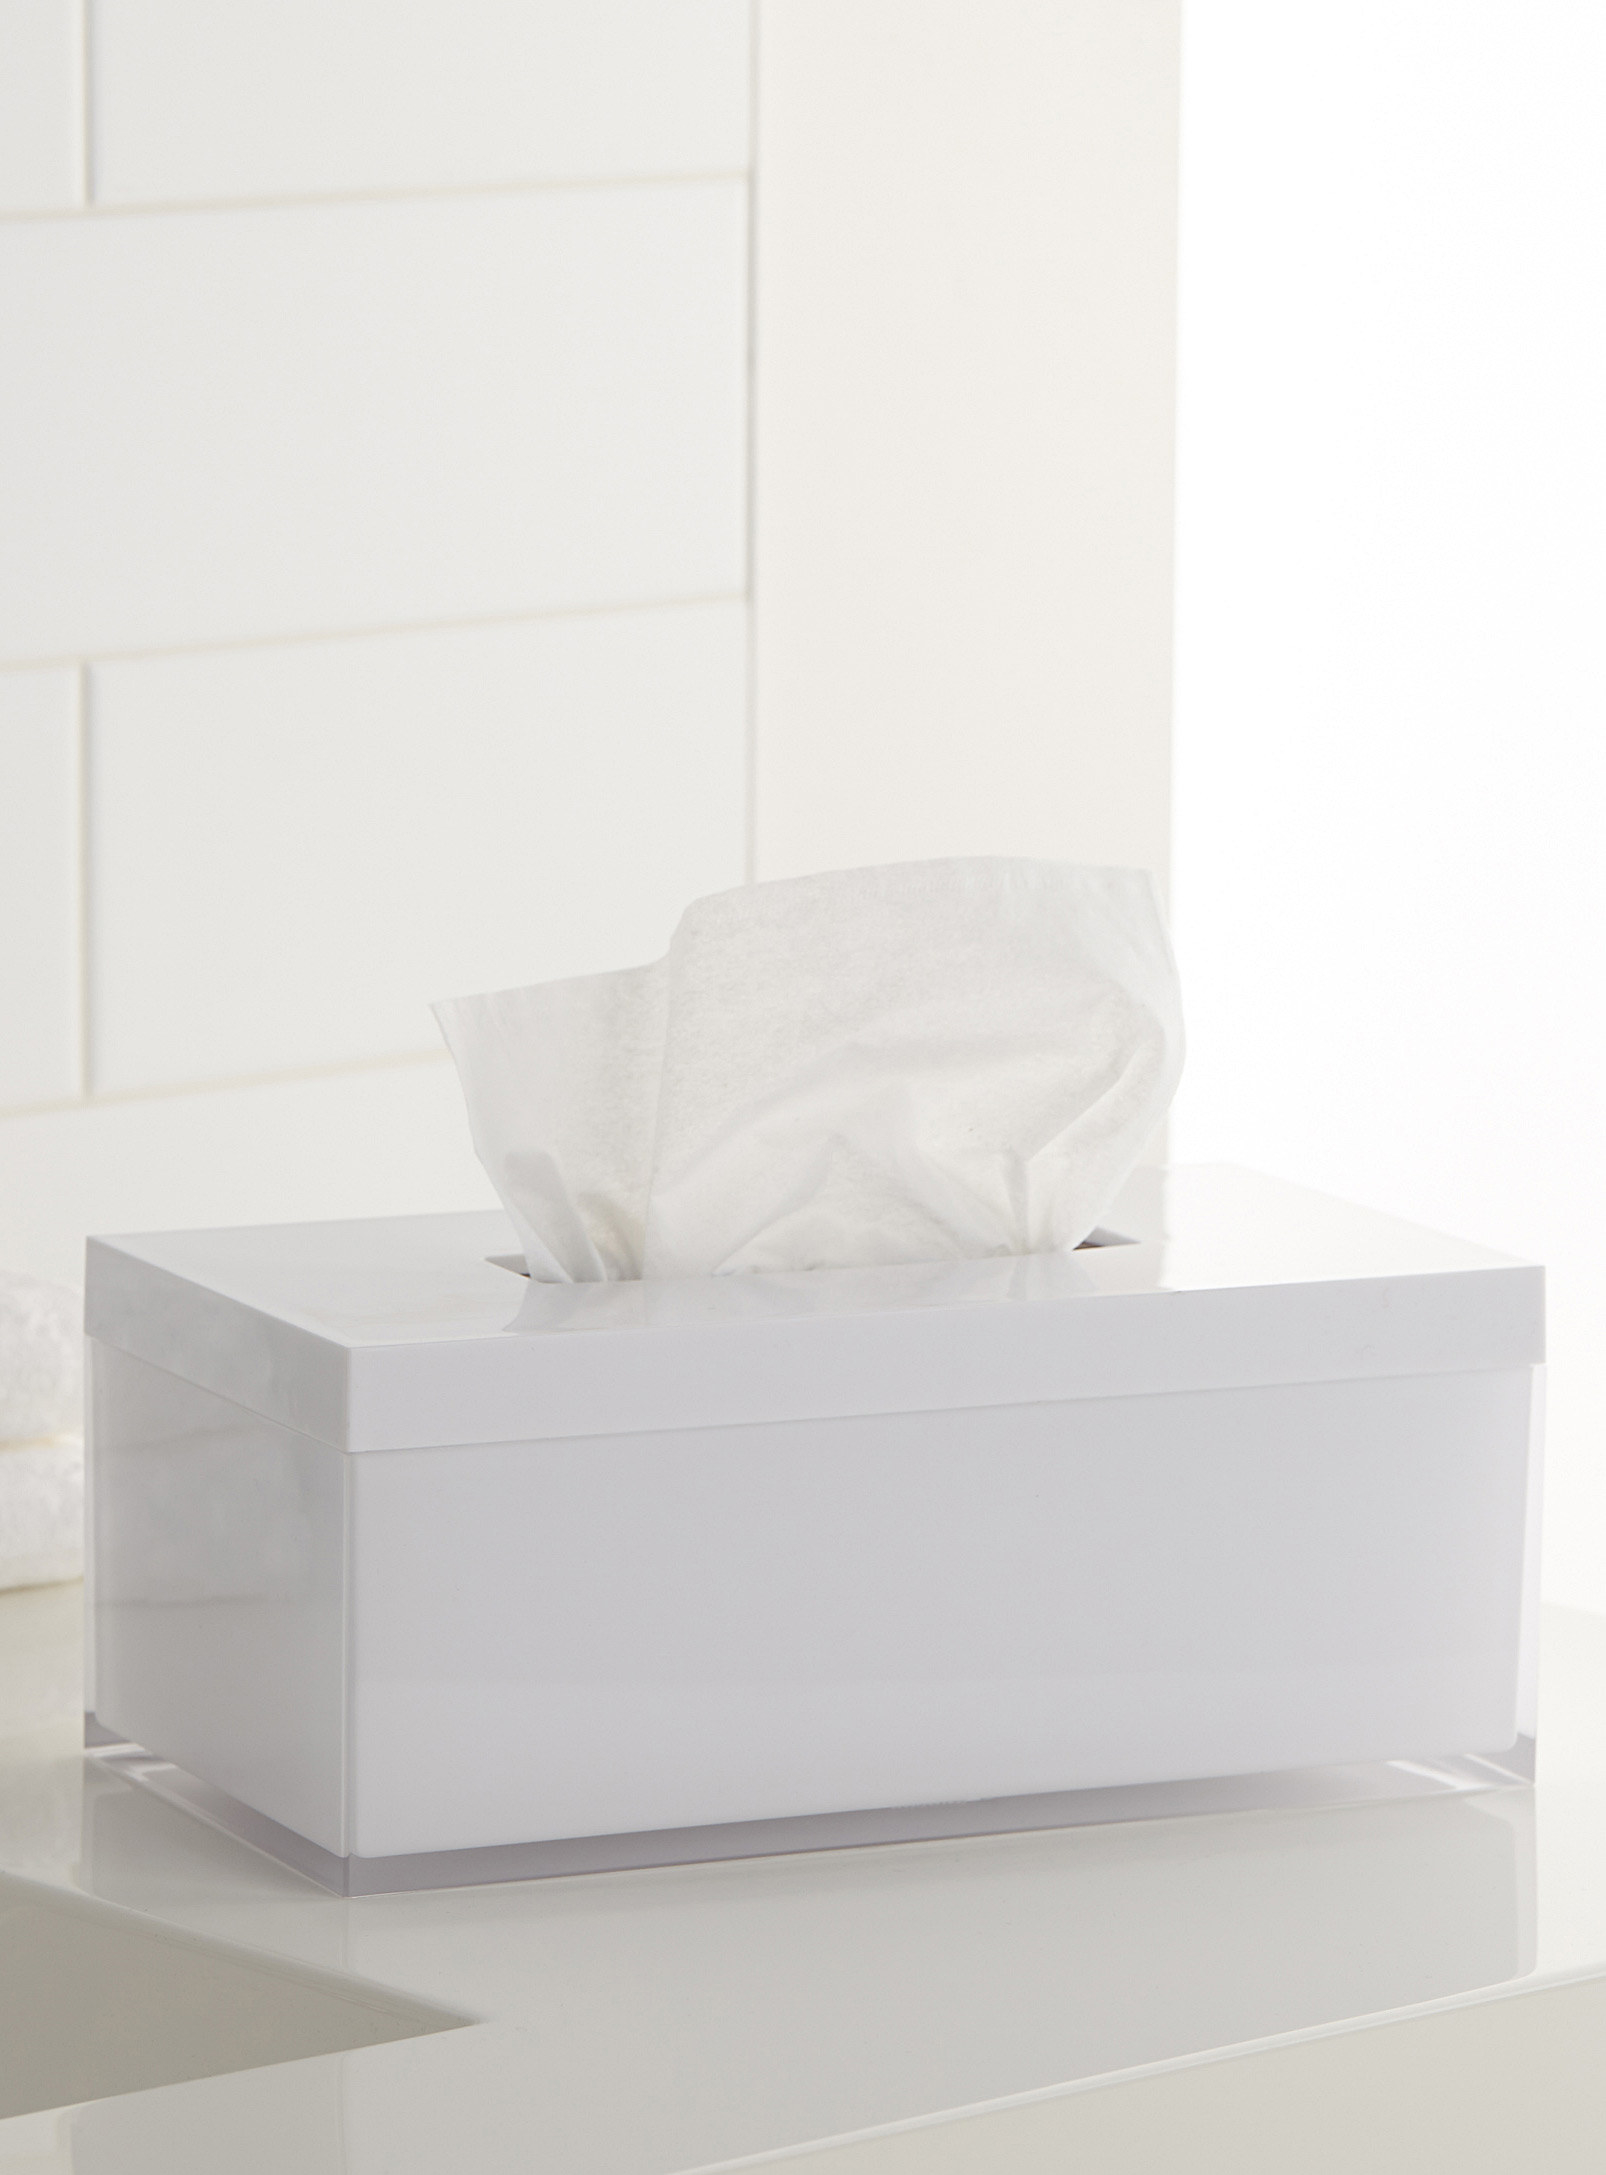 tissue box with tissues in it